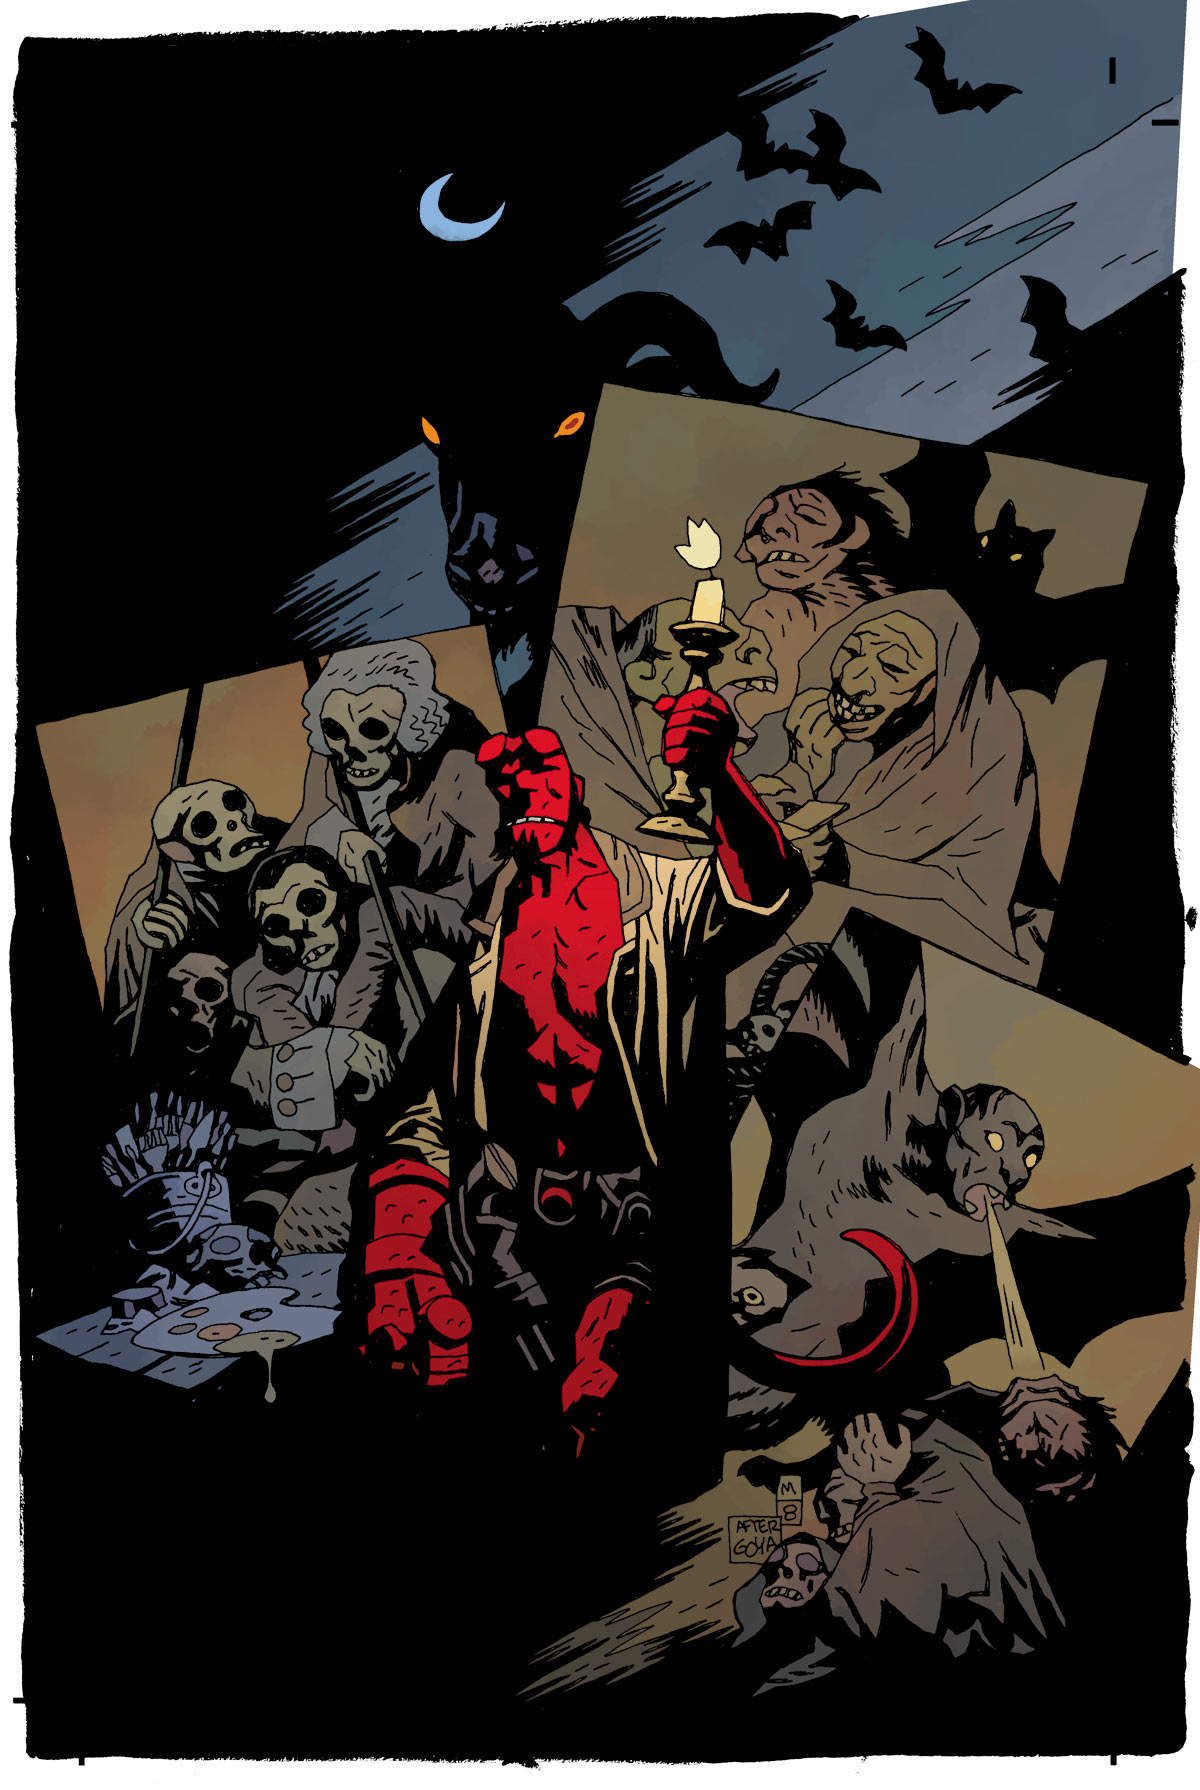 brianmichaelbendis: HELLBOY: IN THE CHAPEL OF MOLOCH Story and Art by Mike Mignola relevant to this weekend